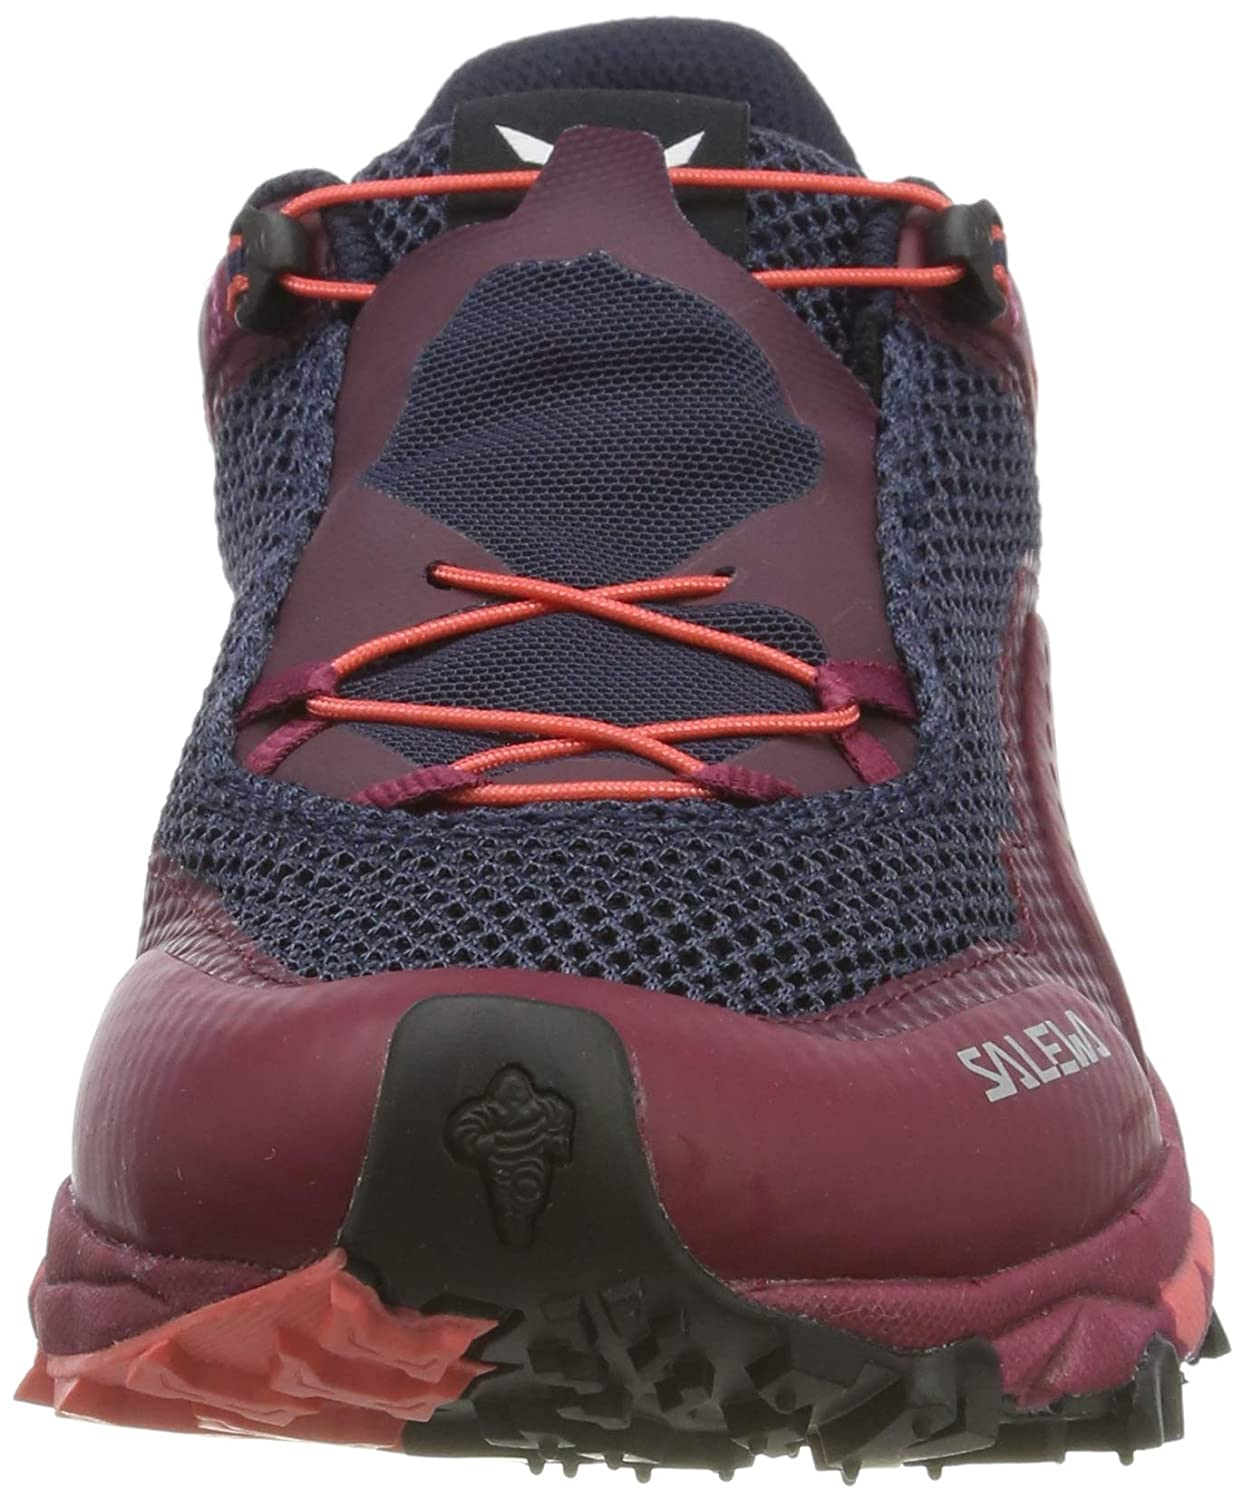 Nike Mens Free Flyknit Chukka Running Mid-Top Athletic Shoes